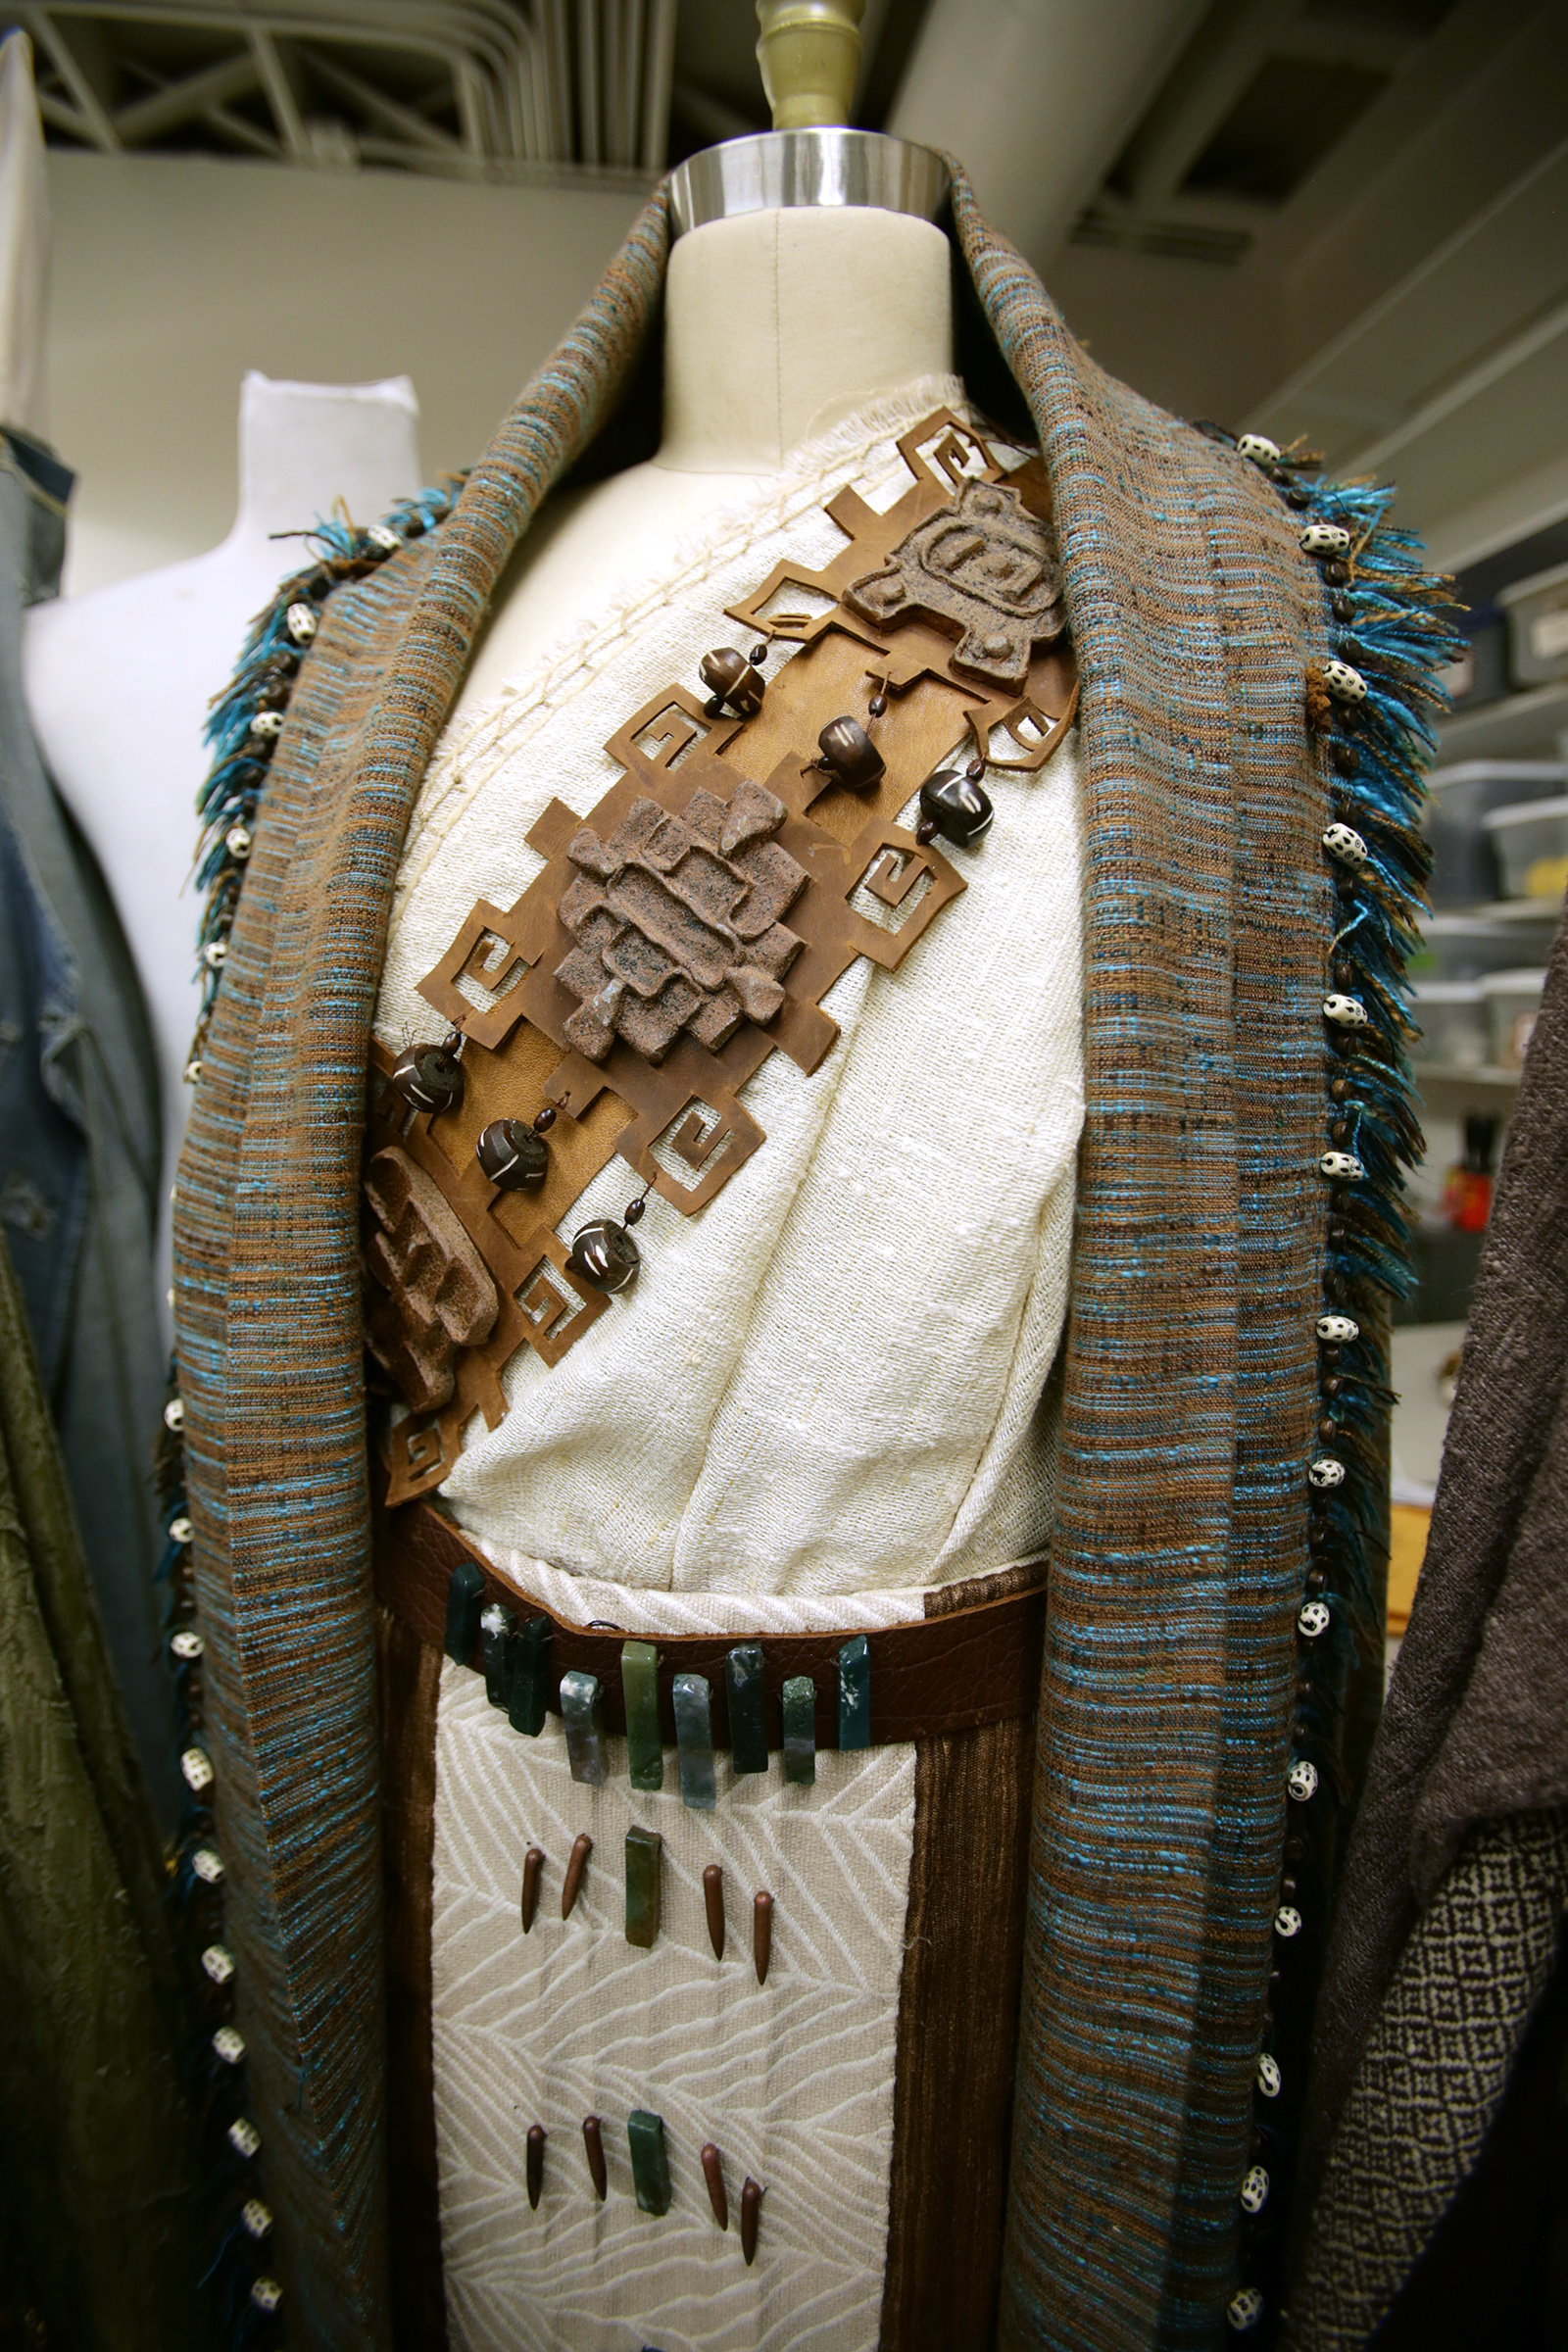 King Lamoni's costume sits on a mannequin inside the prop building as work on production of the Book of Mormon videos continues in Provo, Utah, at the Motion Picture Studio on Tuesday, Sept. 3, 2019.